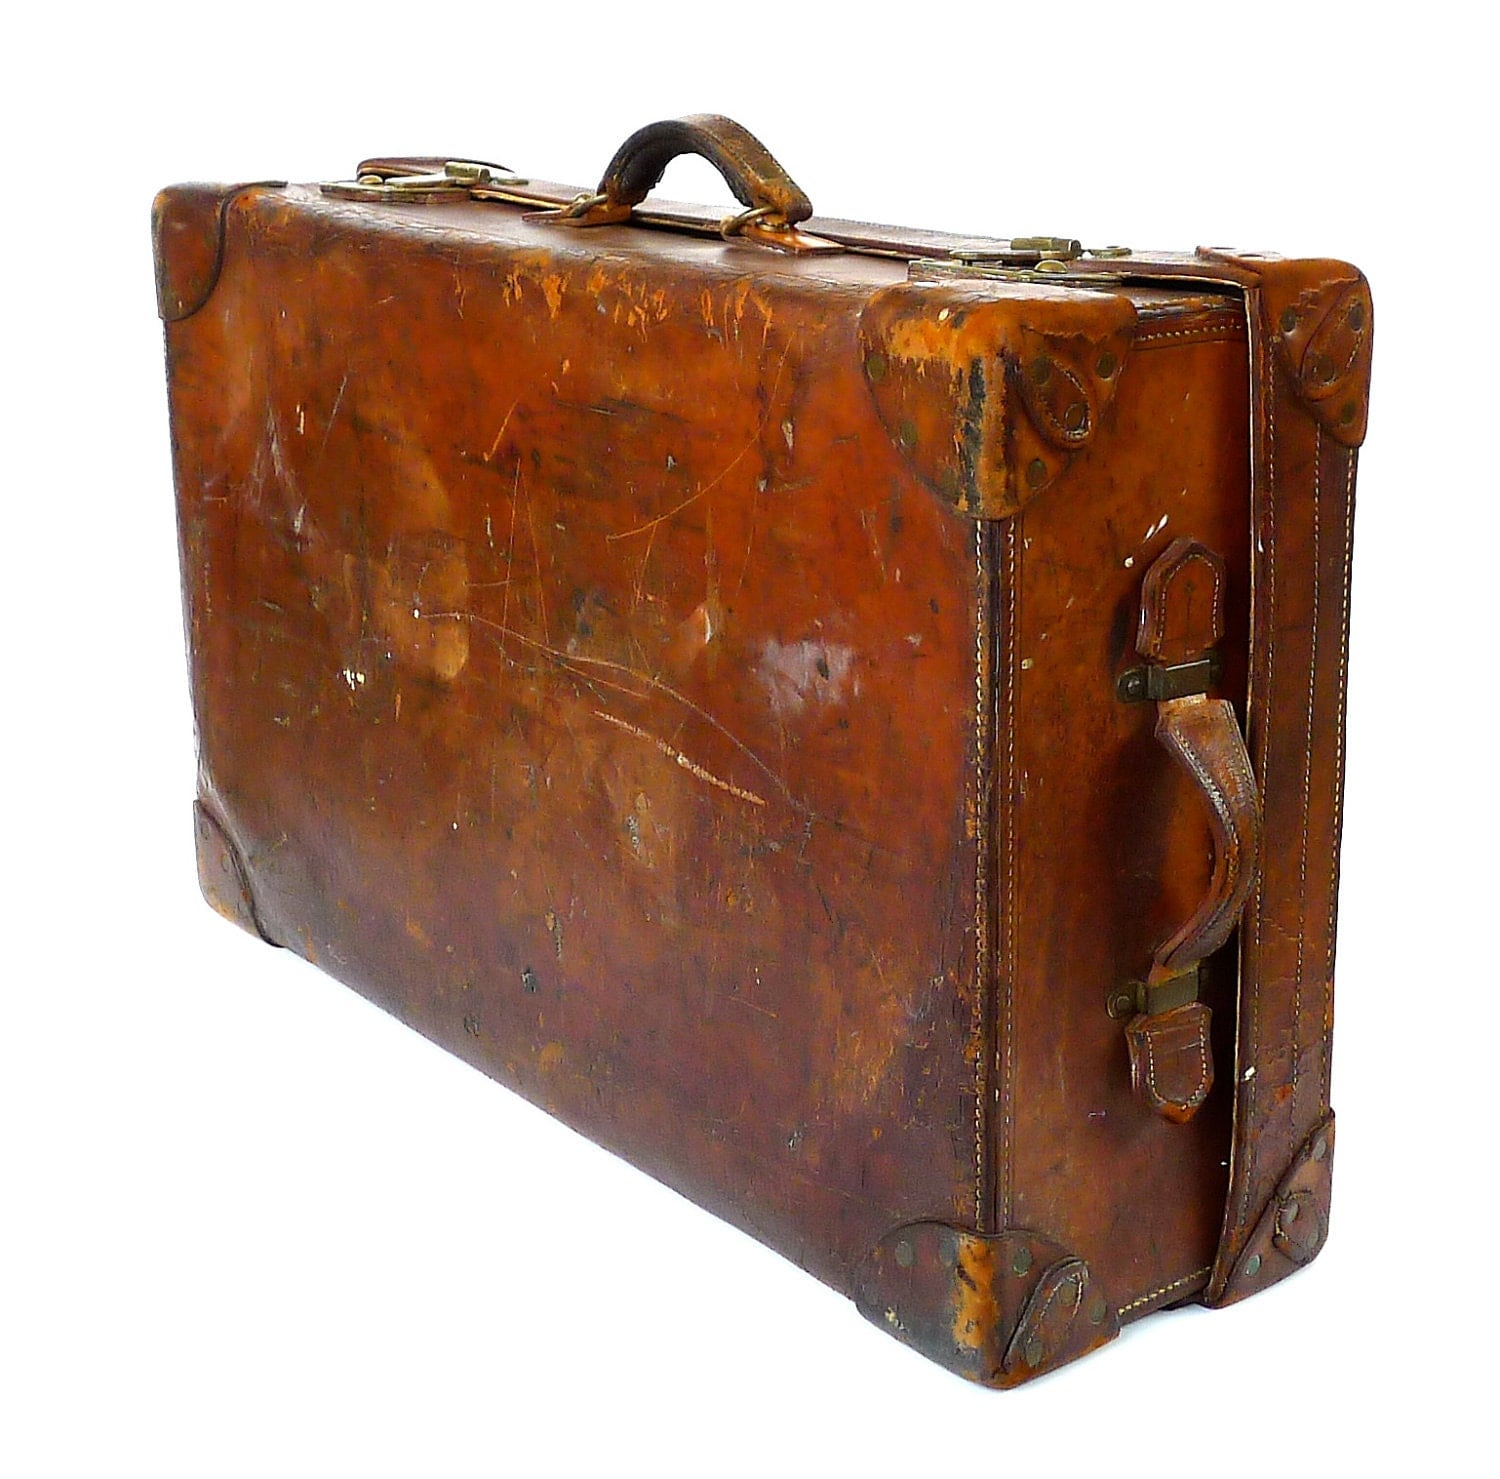 Antique finnigans of london luxury leather trunk suitcase - Vintage suitcase ...